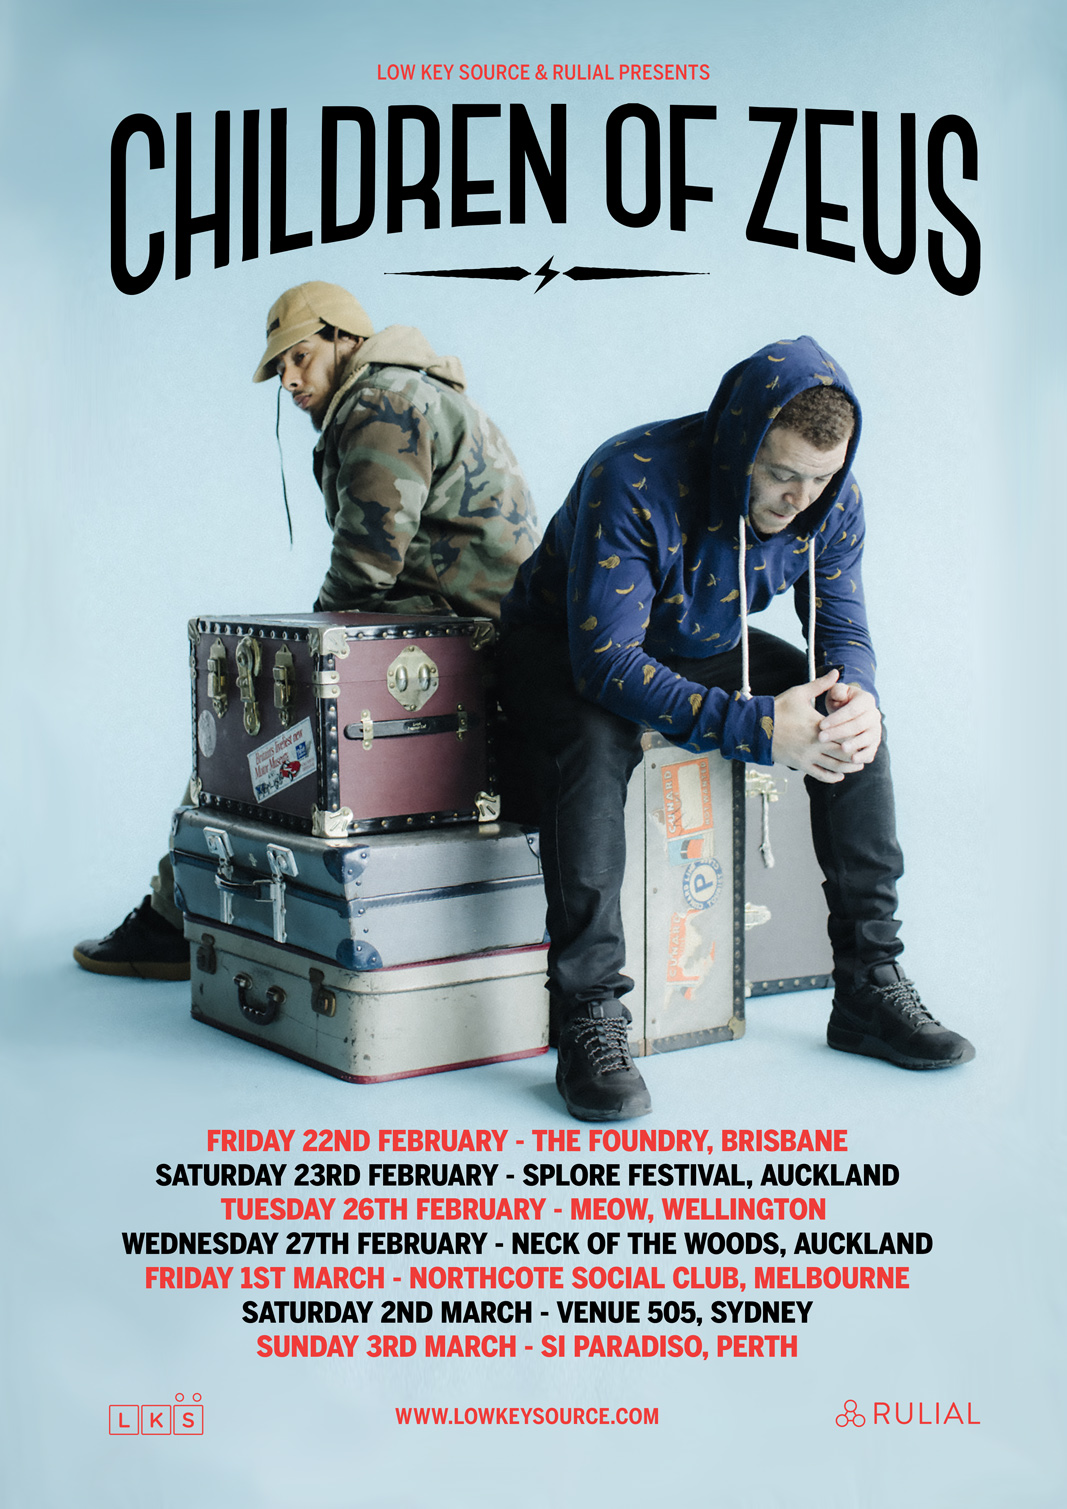 CHILDREN OF ZEUS AUSTRALIA & NEW ZEALAND TOUR